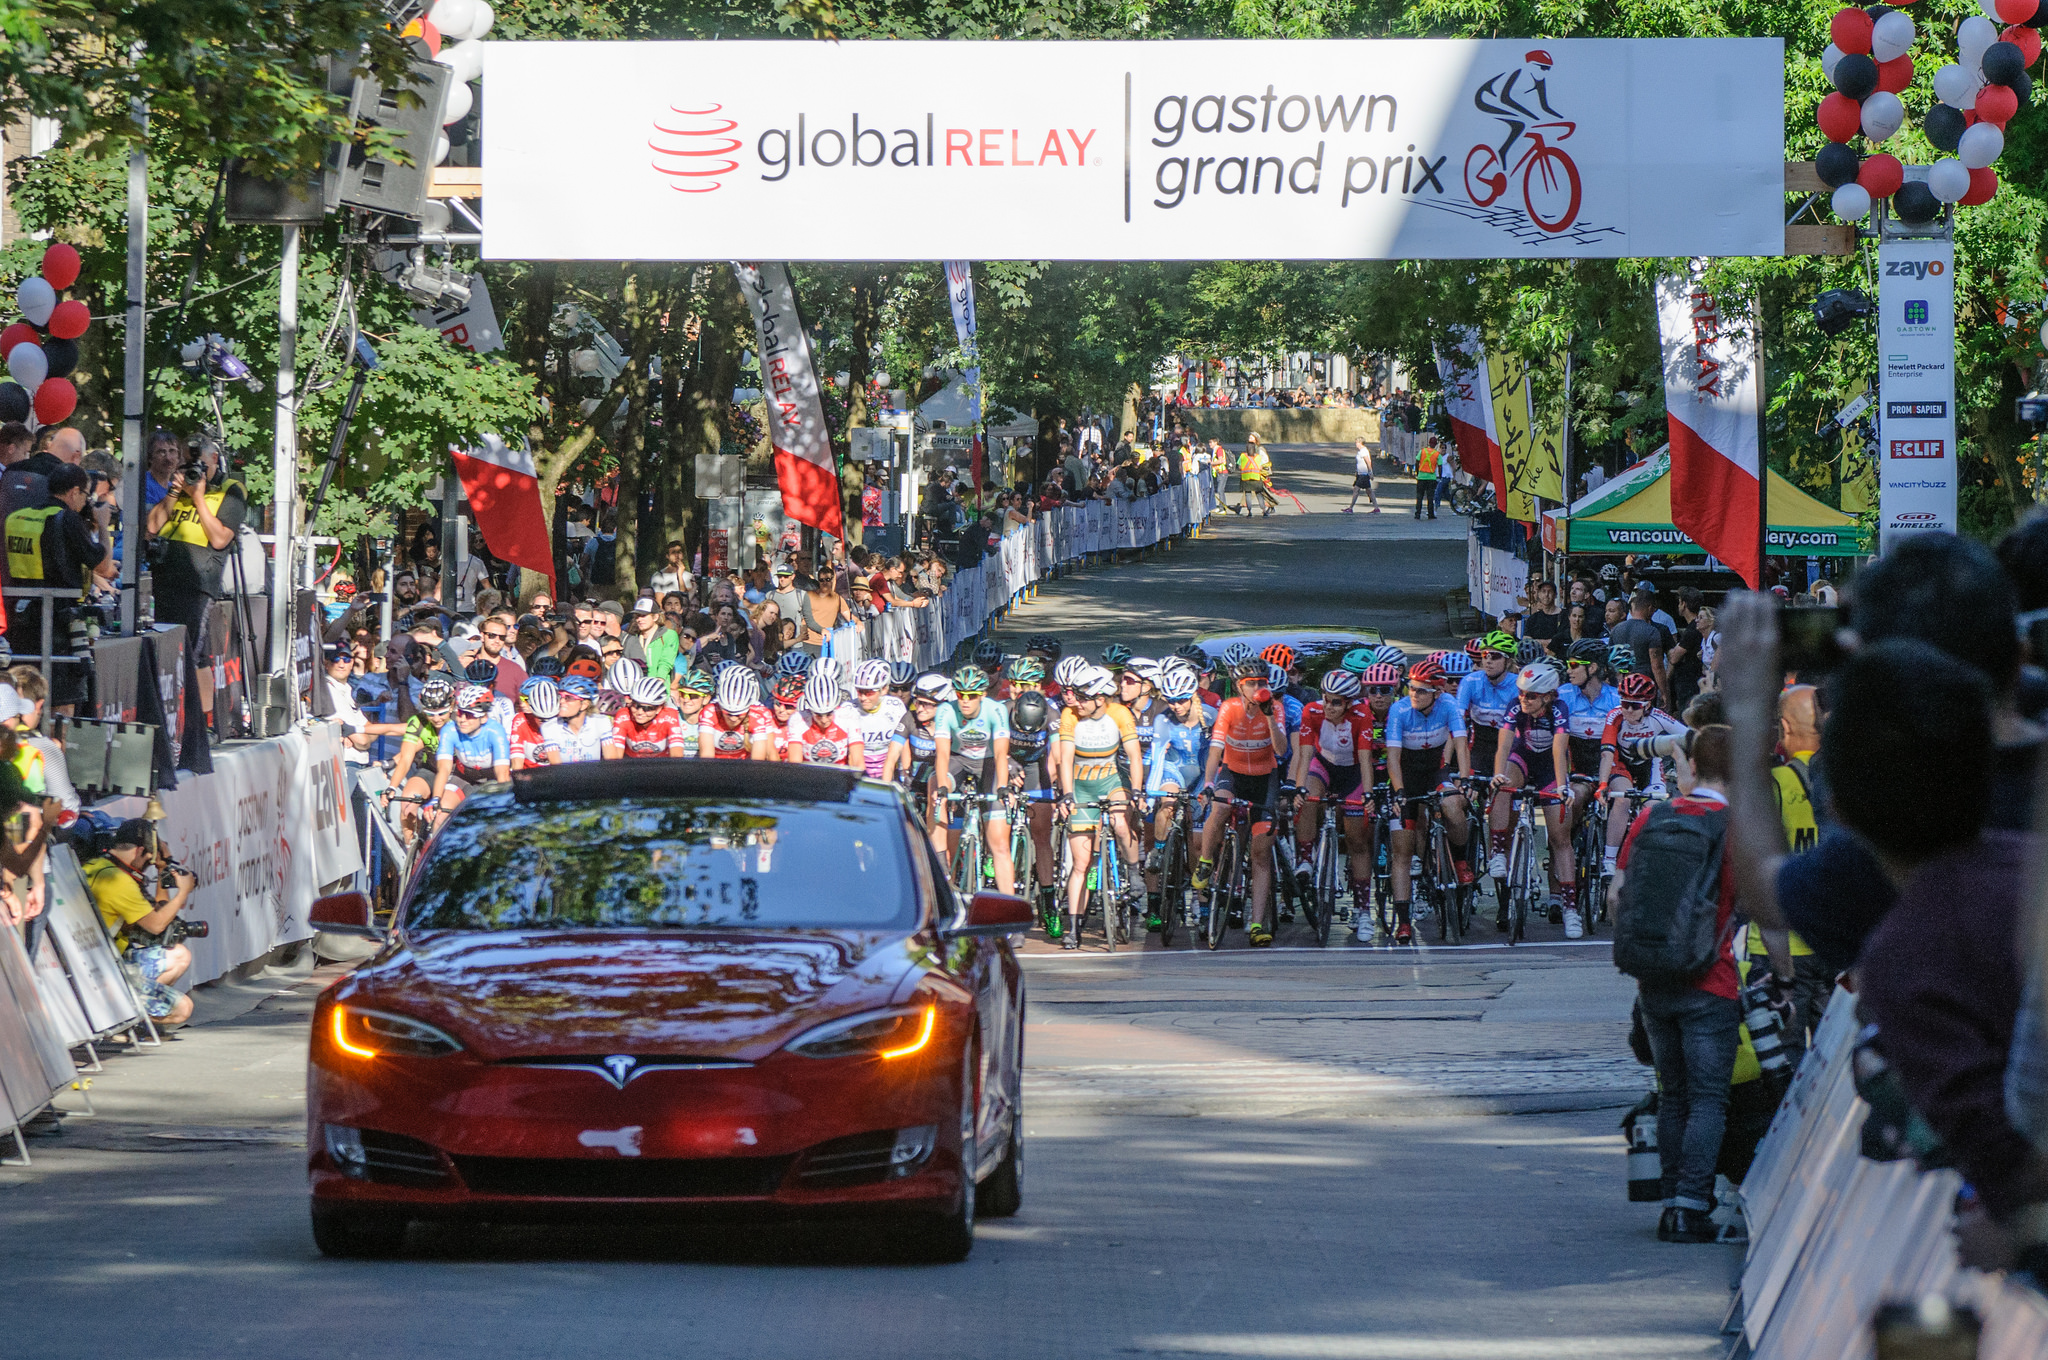 Gastown Grand Prix 2016 (22).jpg